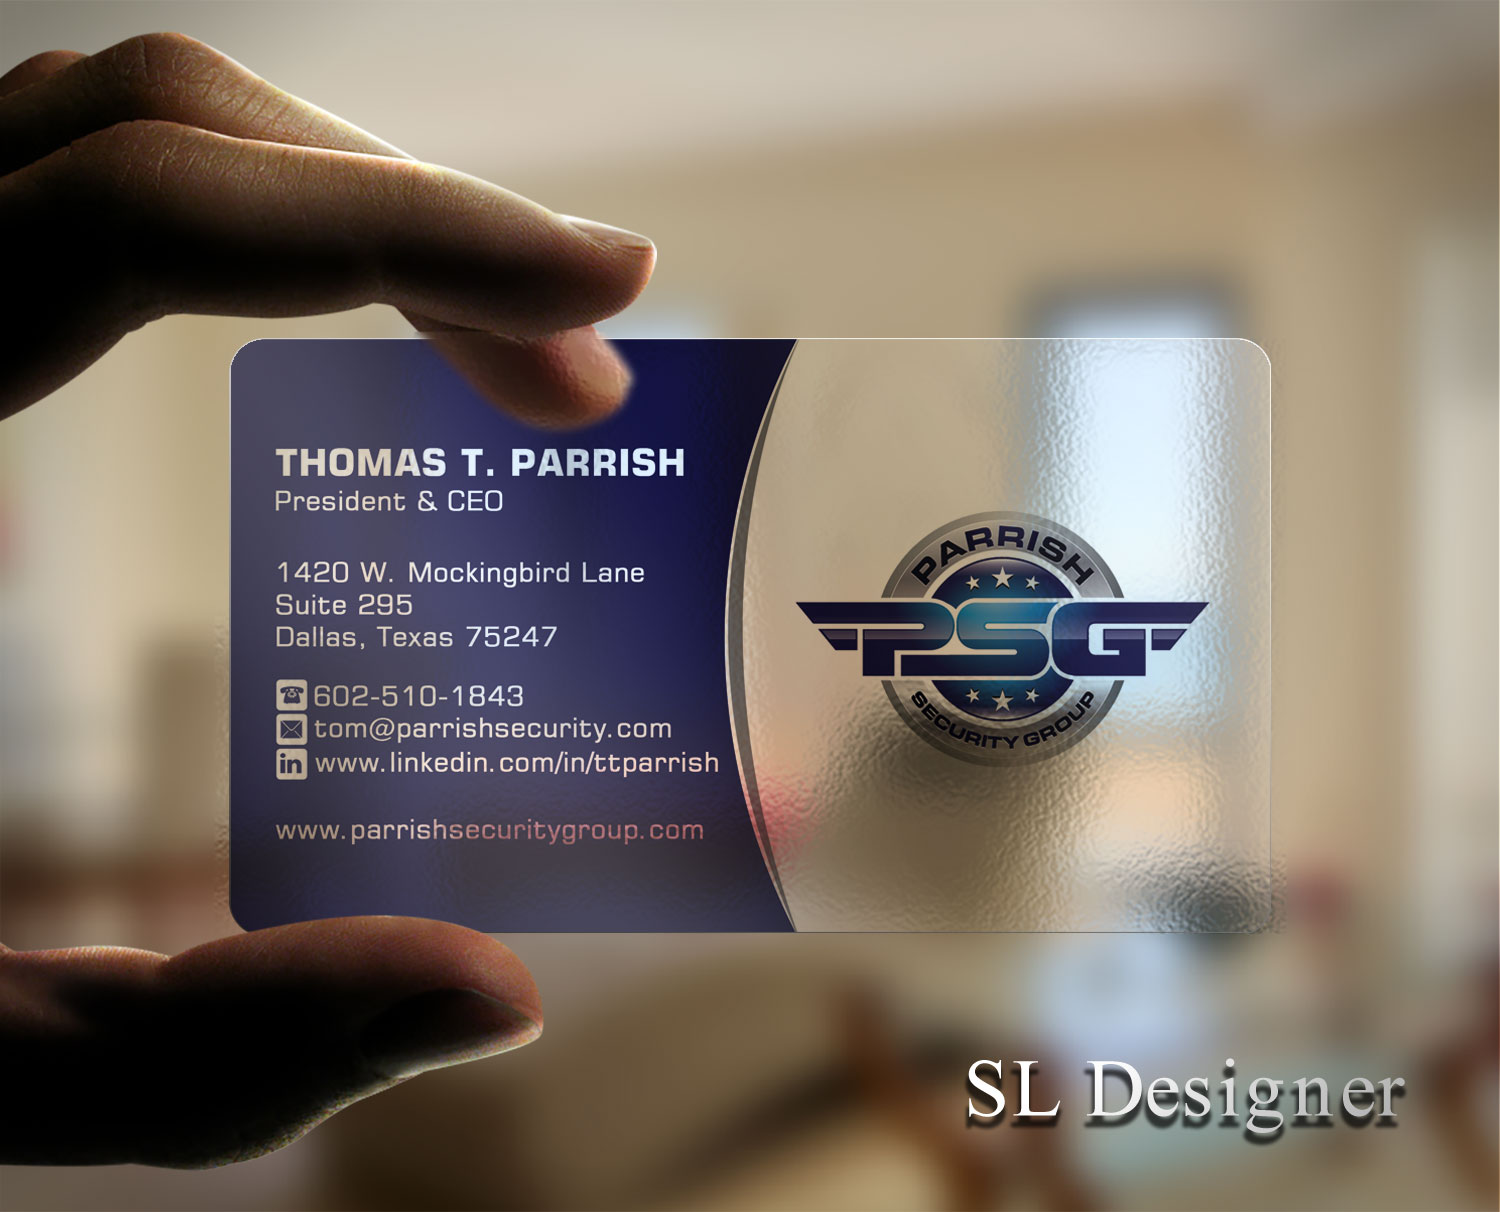 Serious professional business card design for parrish security business card design by sl designer for security company needs an updated business card and letterhead reheart Choice Image